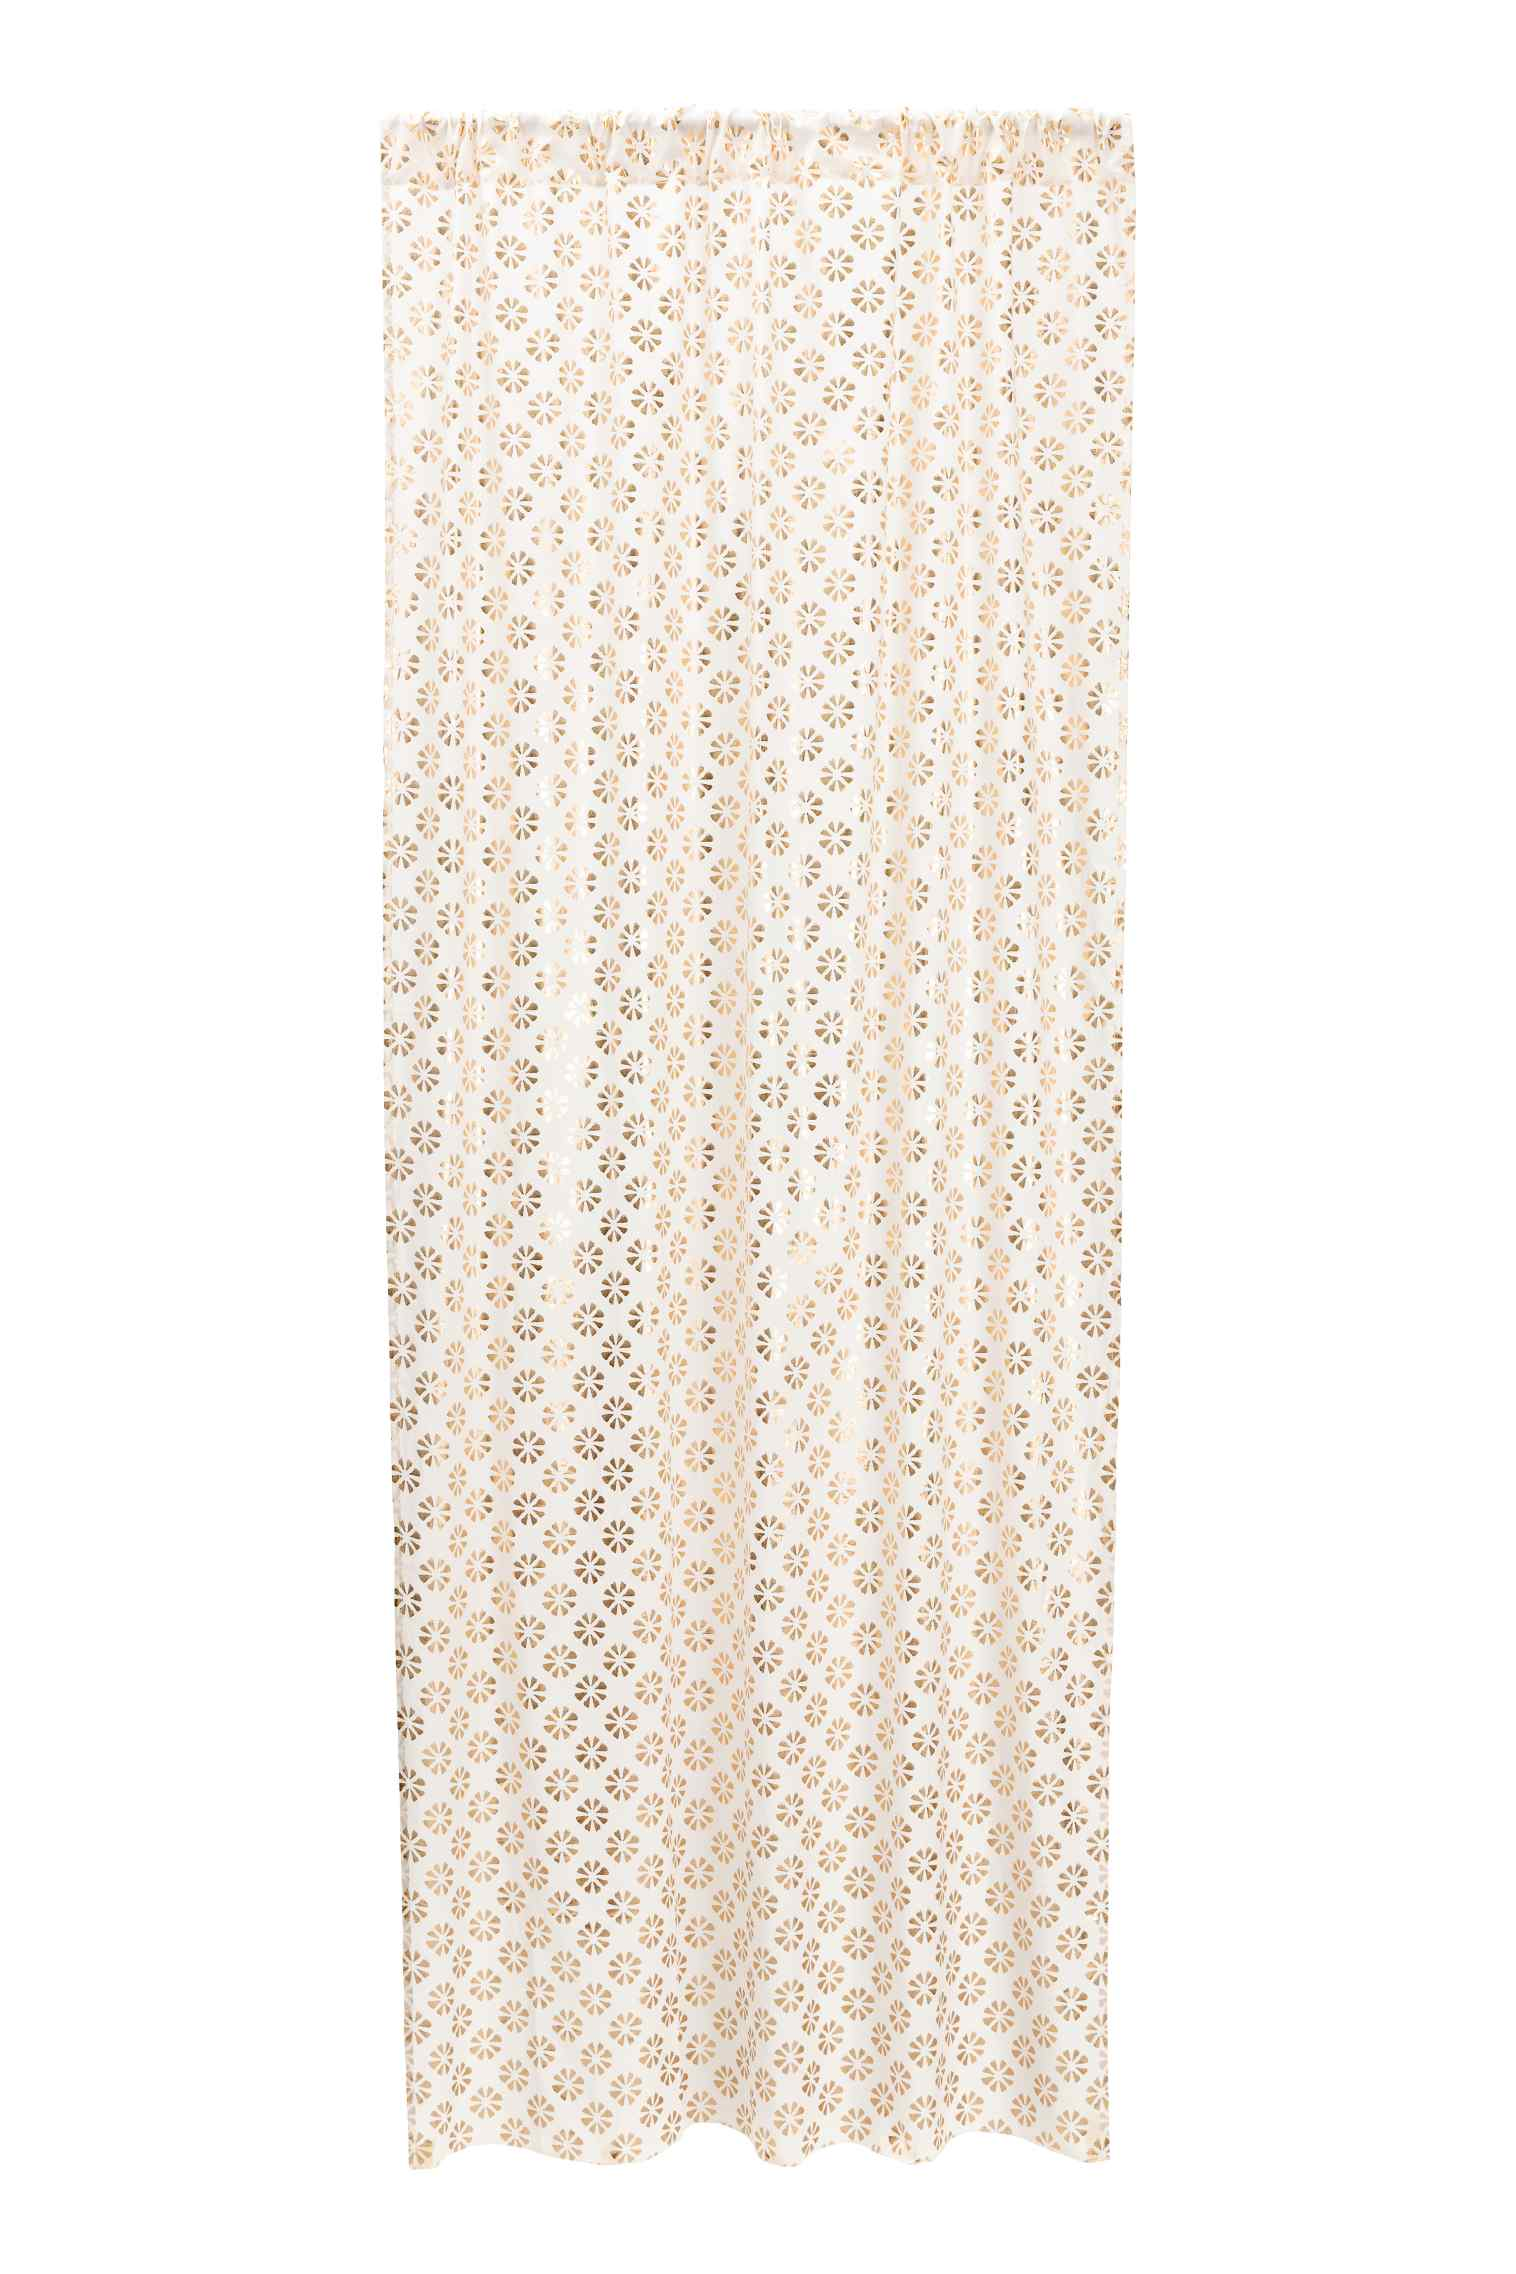 Patterned curtain length in white & gold  - H&M - £19.99